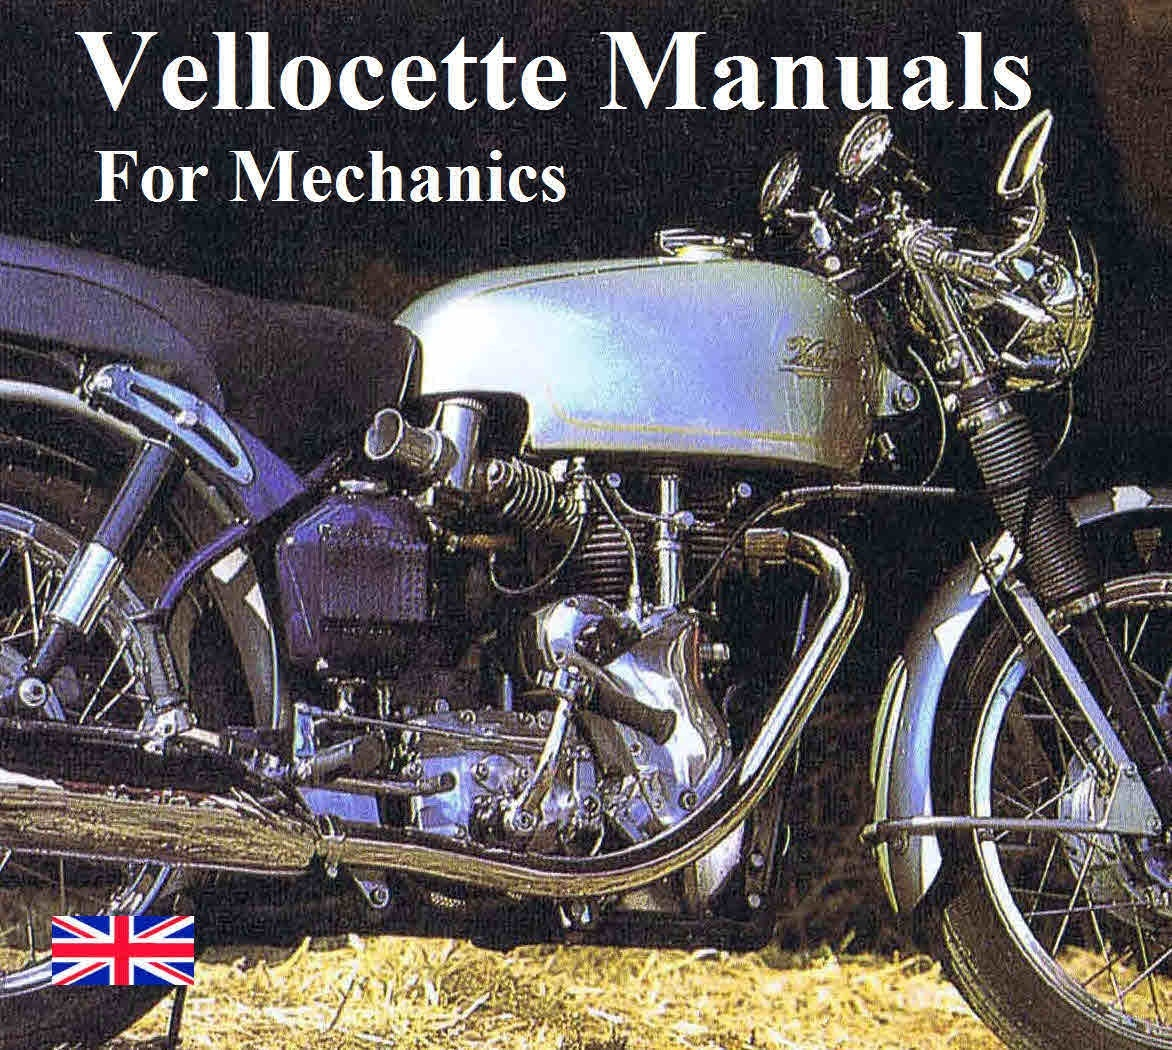 Vintage motorcycle manuals for mechanics velocette vintage motorcycle manuals for mechanics asfbconference2016 Choice Image